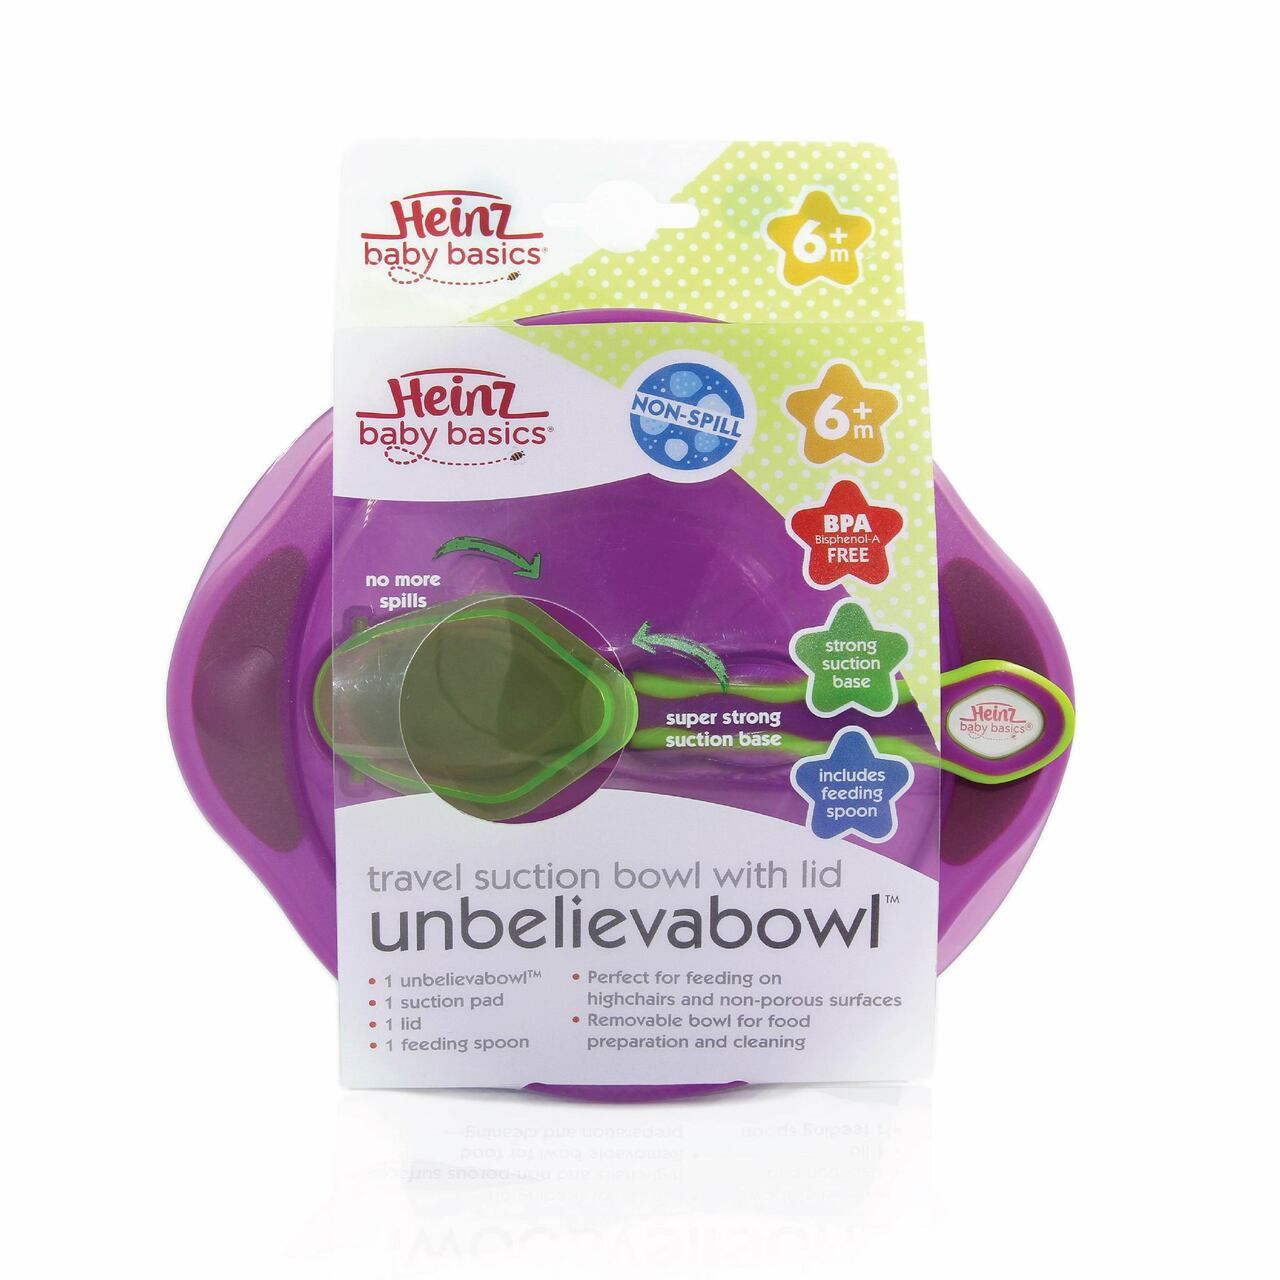 Heinz Baby Basics Unbelievabowl Suction Bowl at Baby Barn Discounts Heinz Baby Basics Unbelieveabowl has been designed to stick to your baby's highchair or your tabletop.